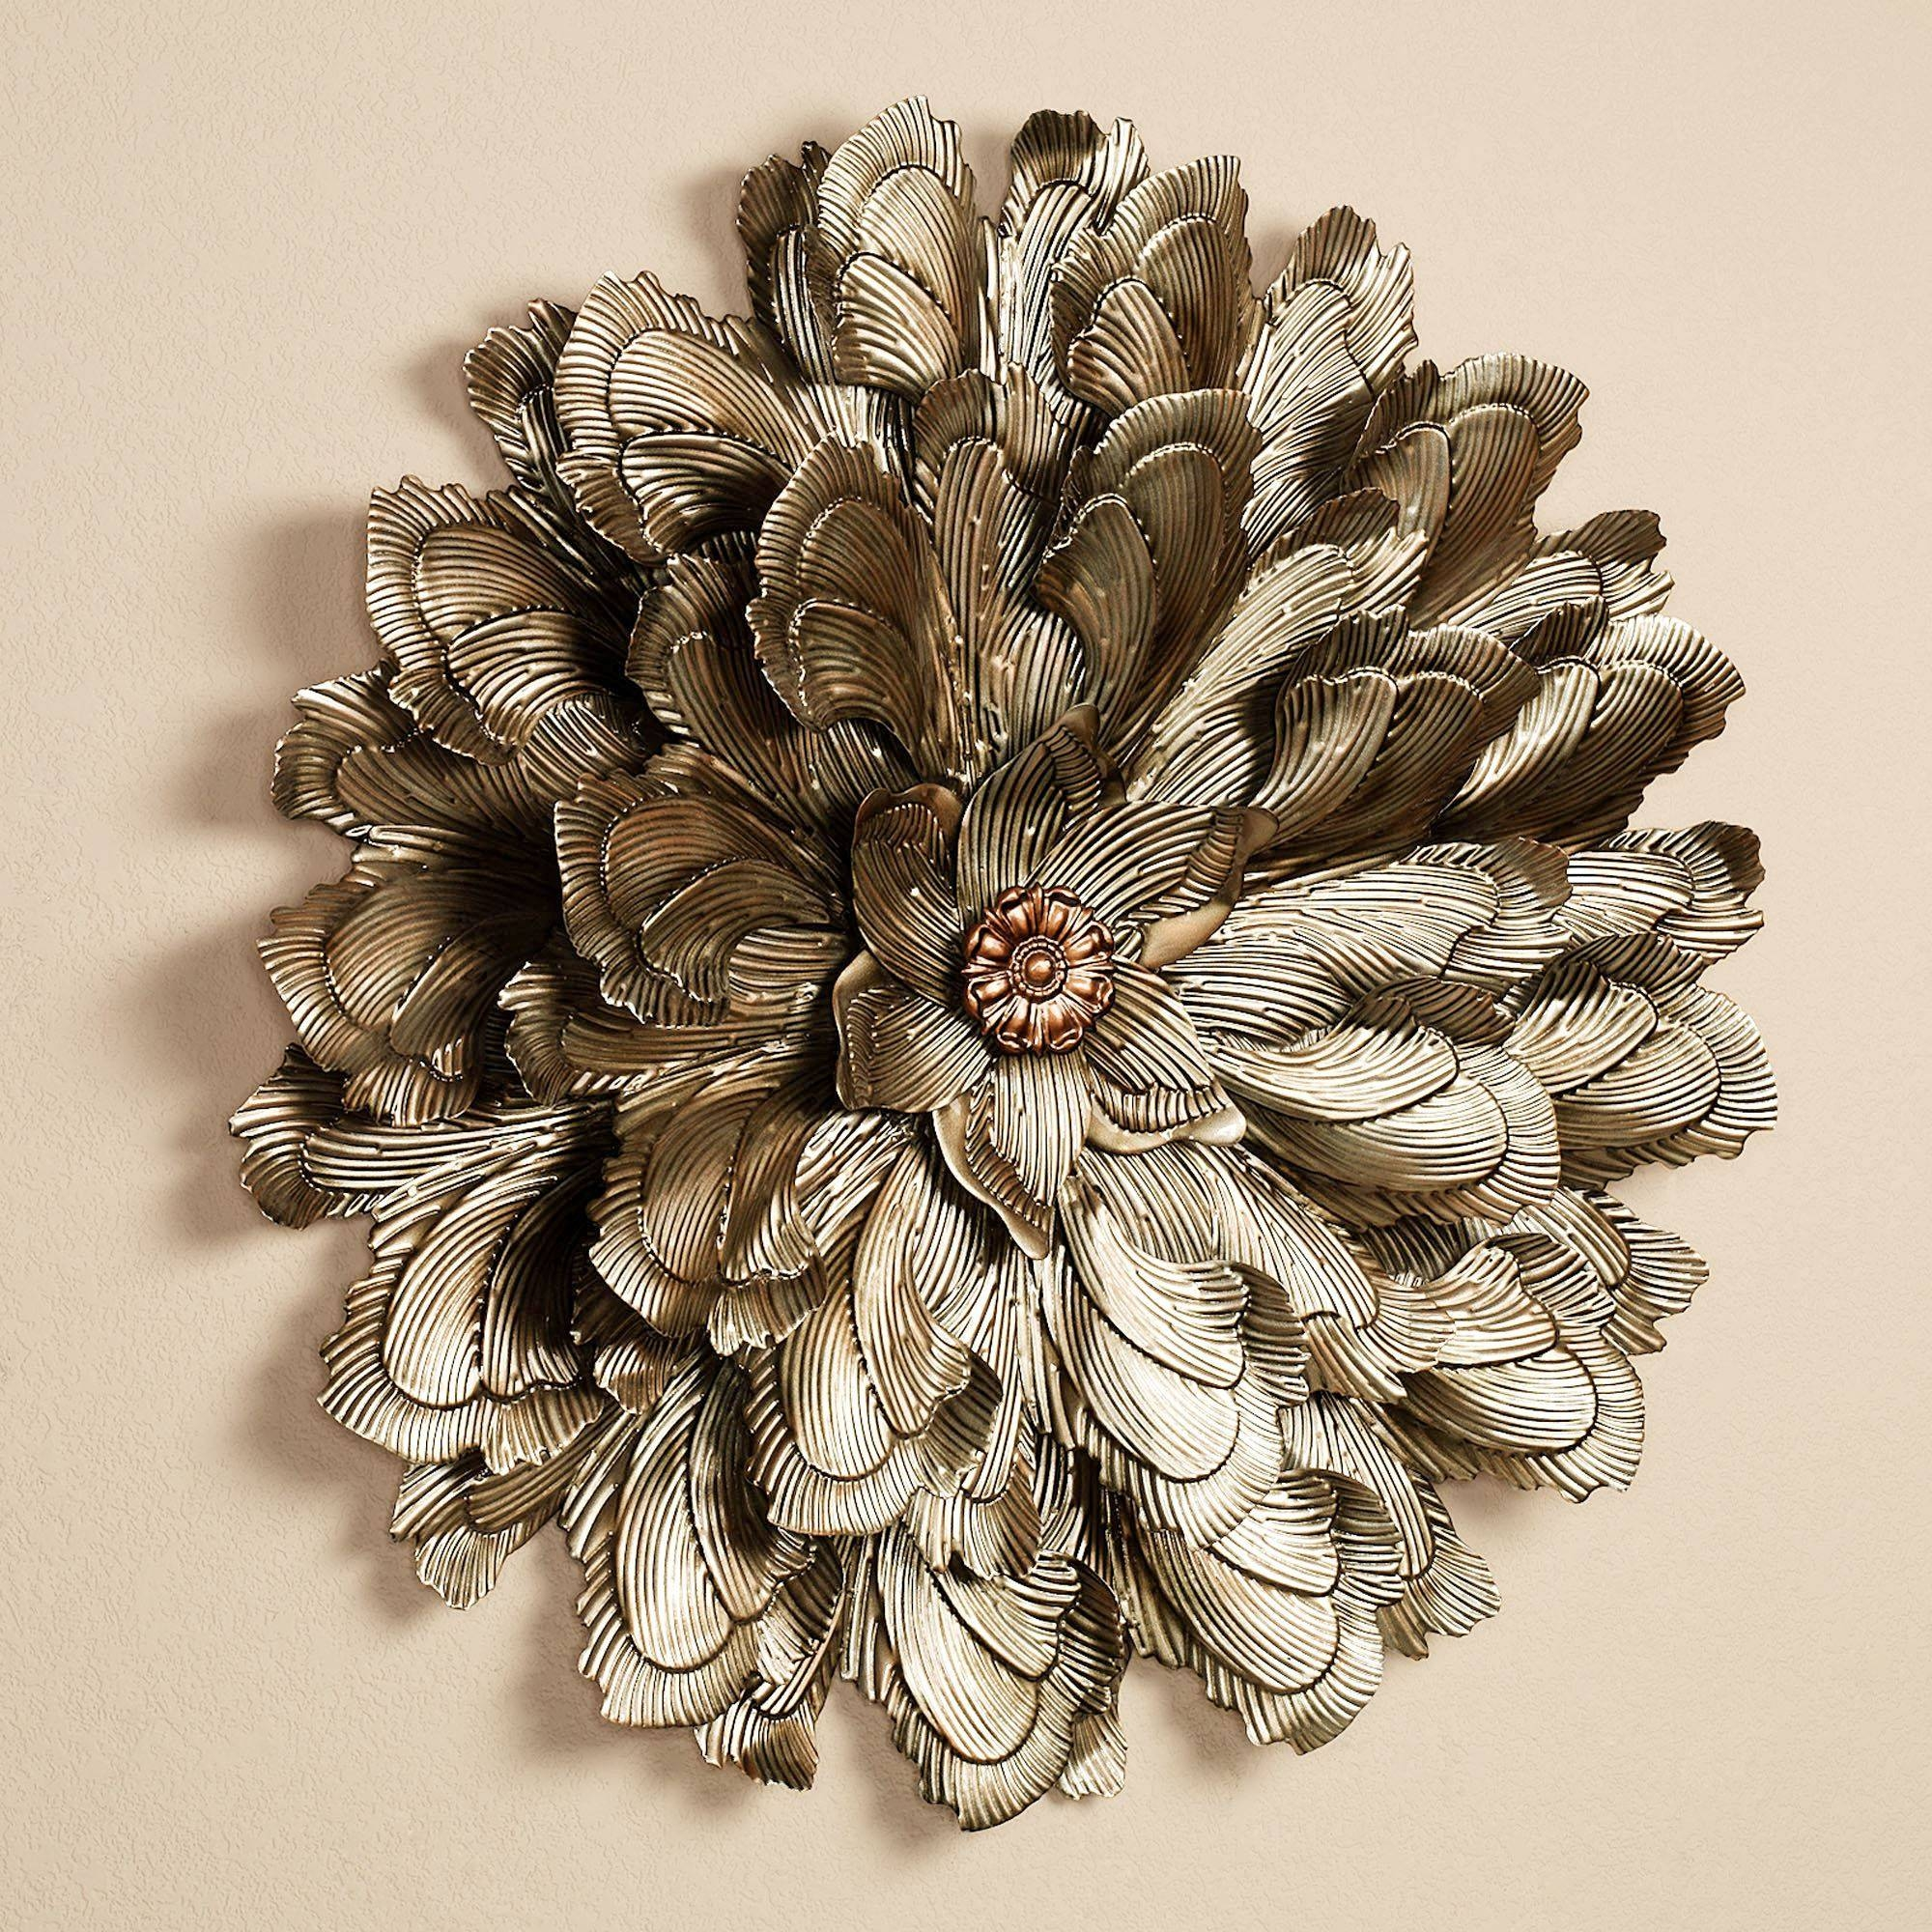 Delicate Flower Blossom Metal Wall Sculpture In Best And Newest Floral Metal Wall Art (View 11 of 20)